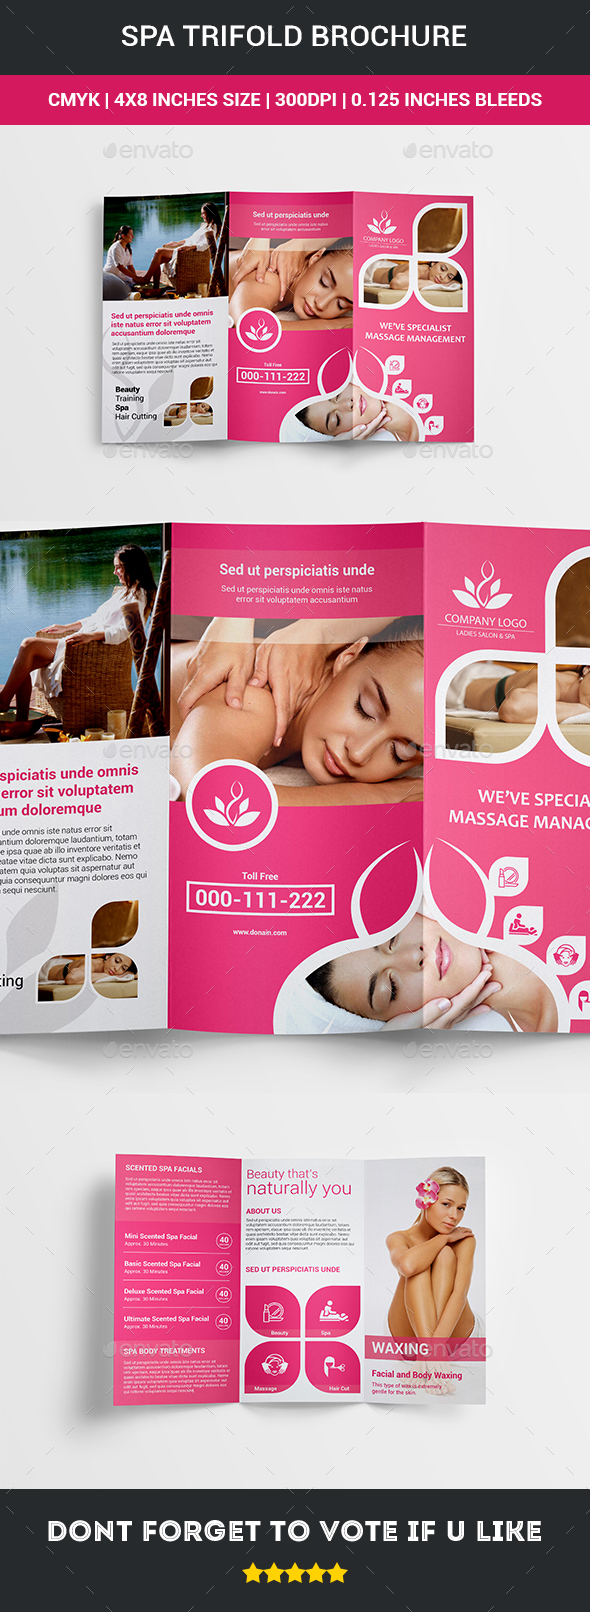 Spa Trifold Brochure - Signage Print Templates